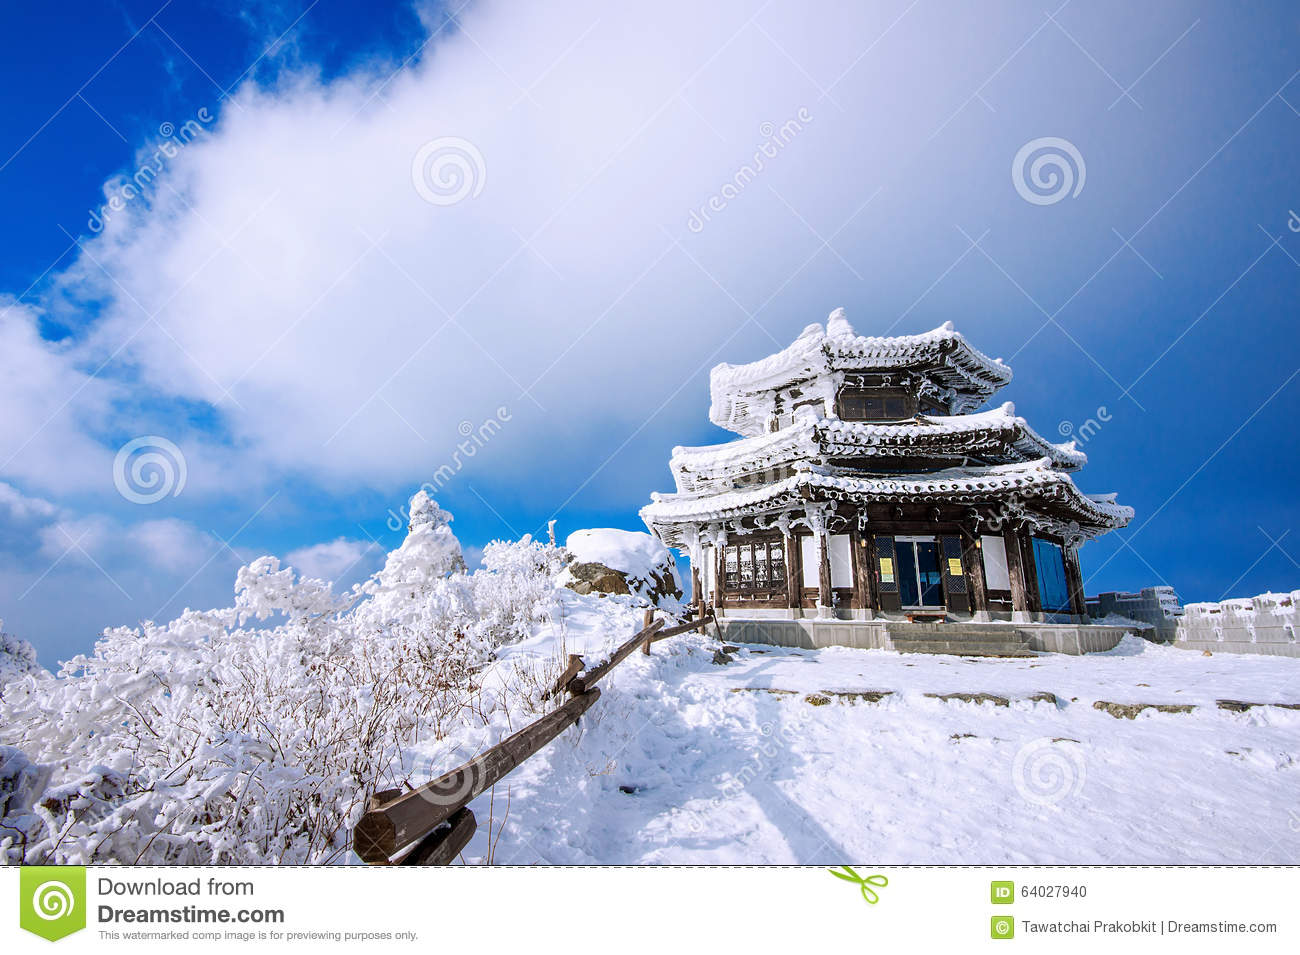 Wooden house is covered by snow in winter, Deogyusan mountains.